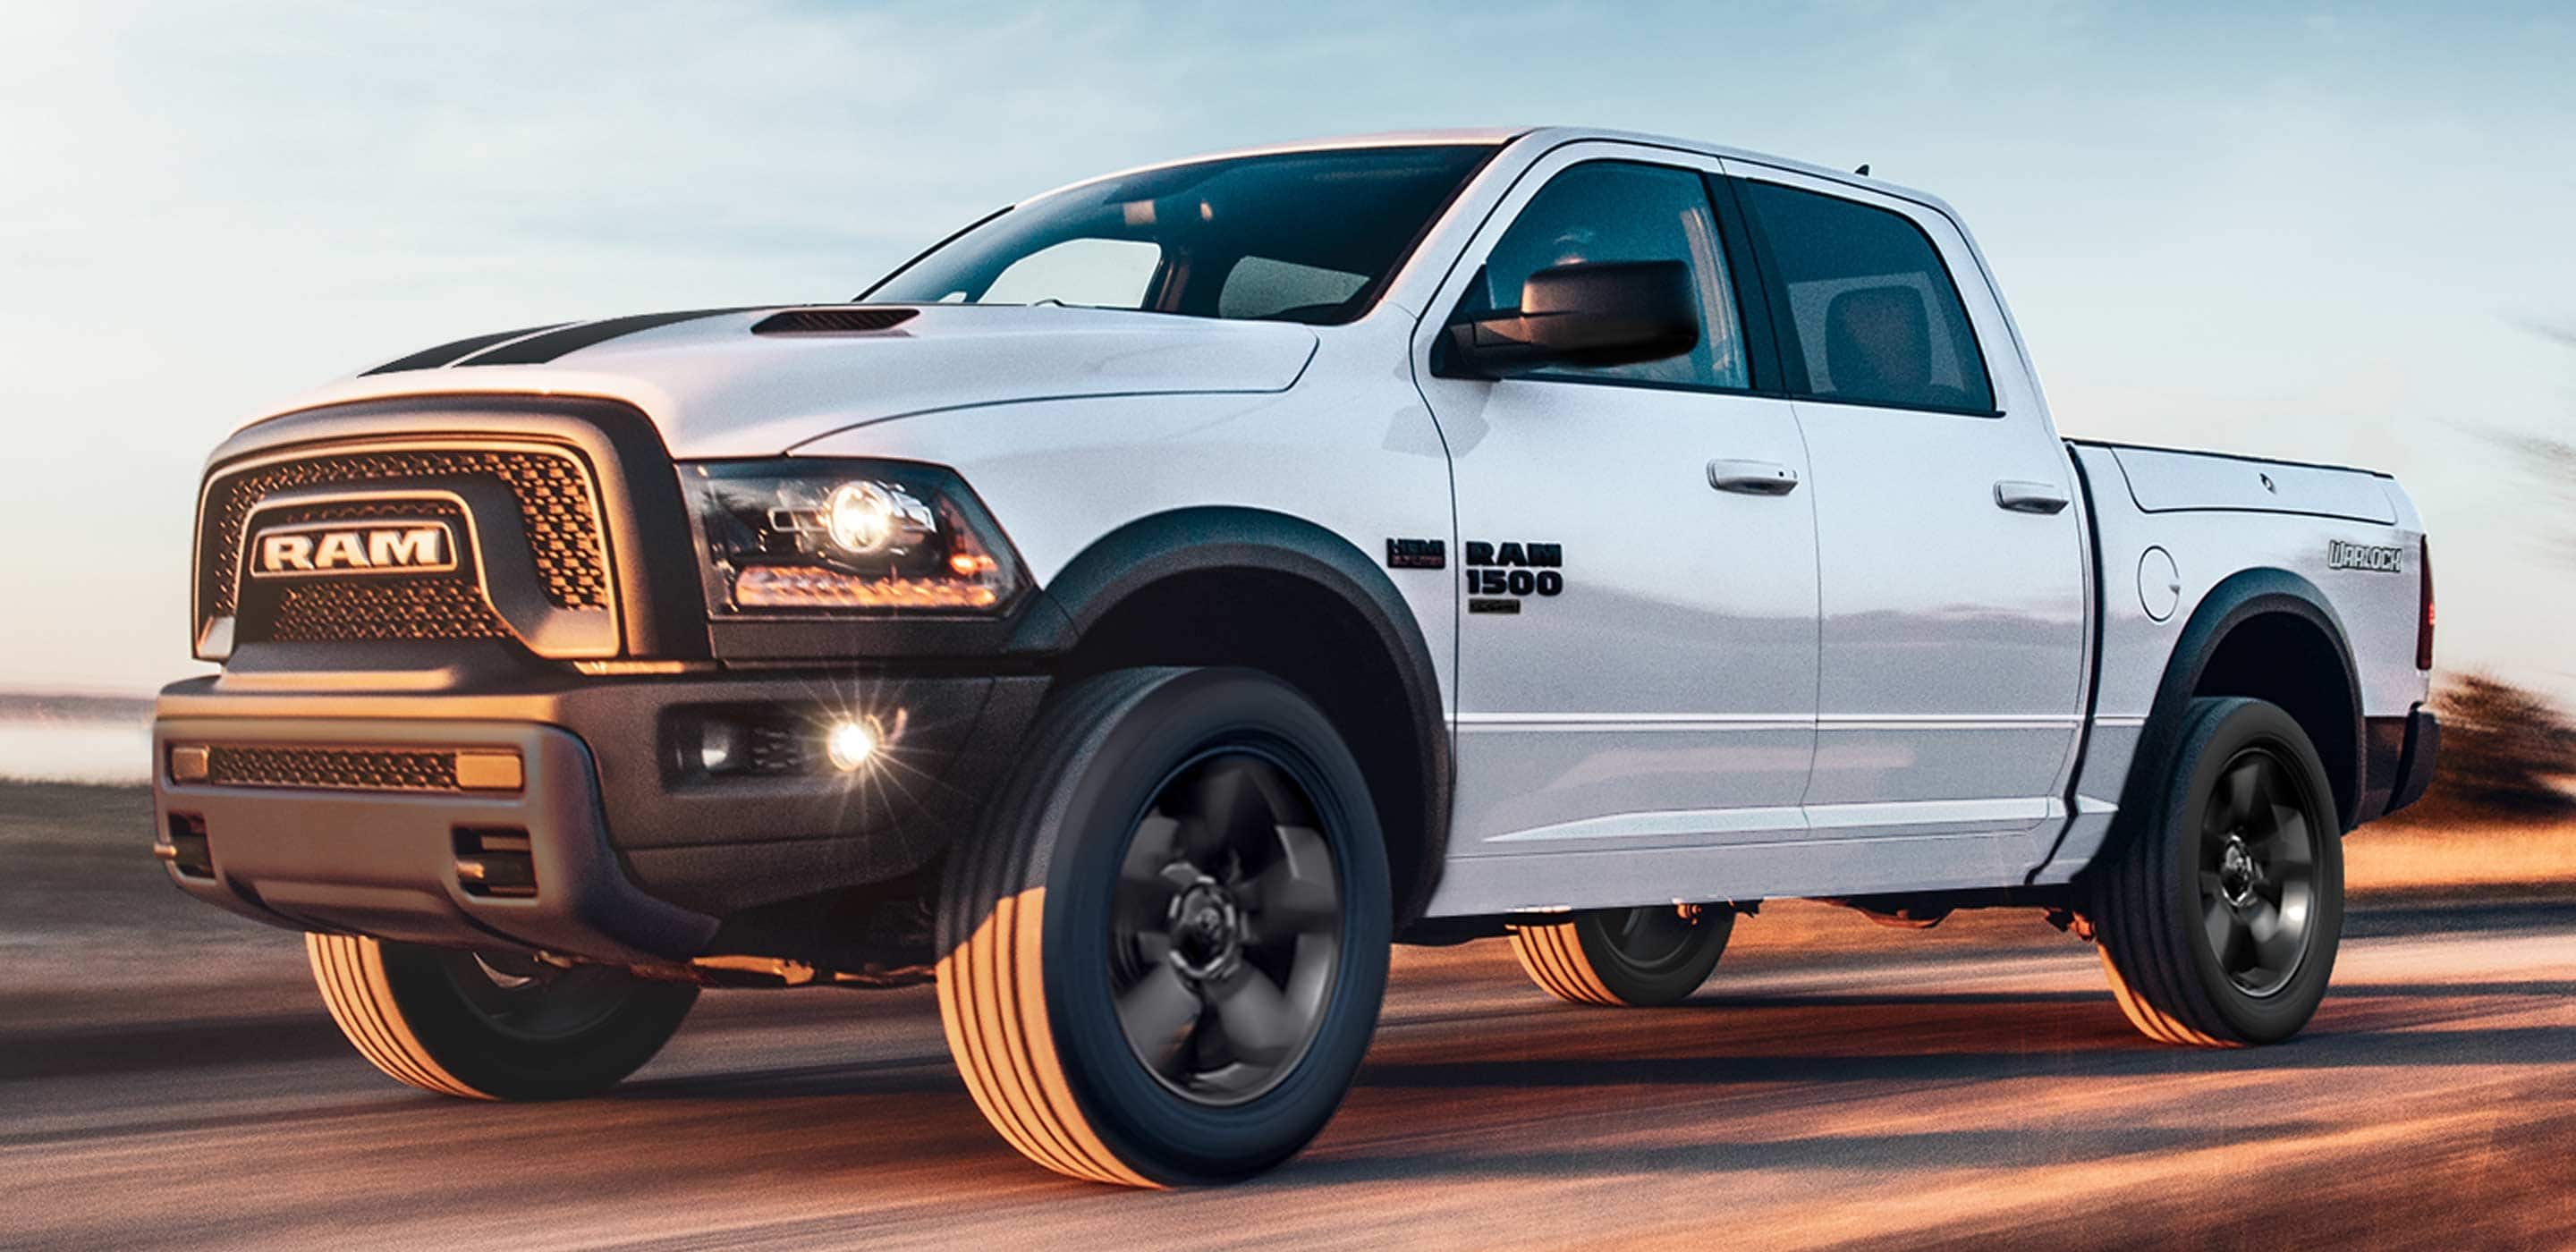 2020 Ram 1500 Classic Official Gallery Truck Pictures